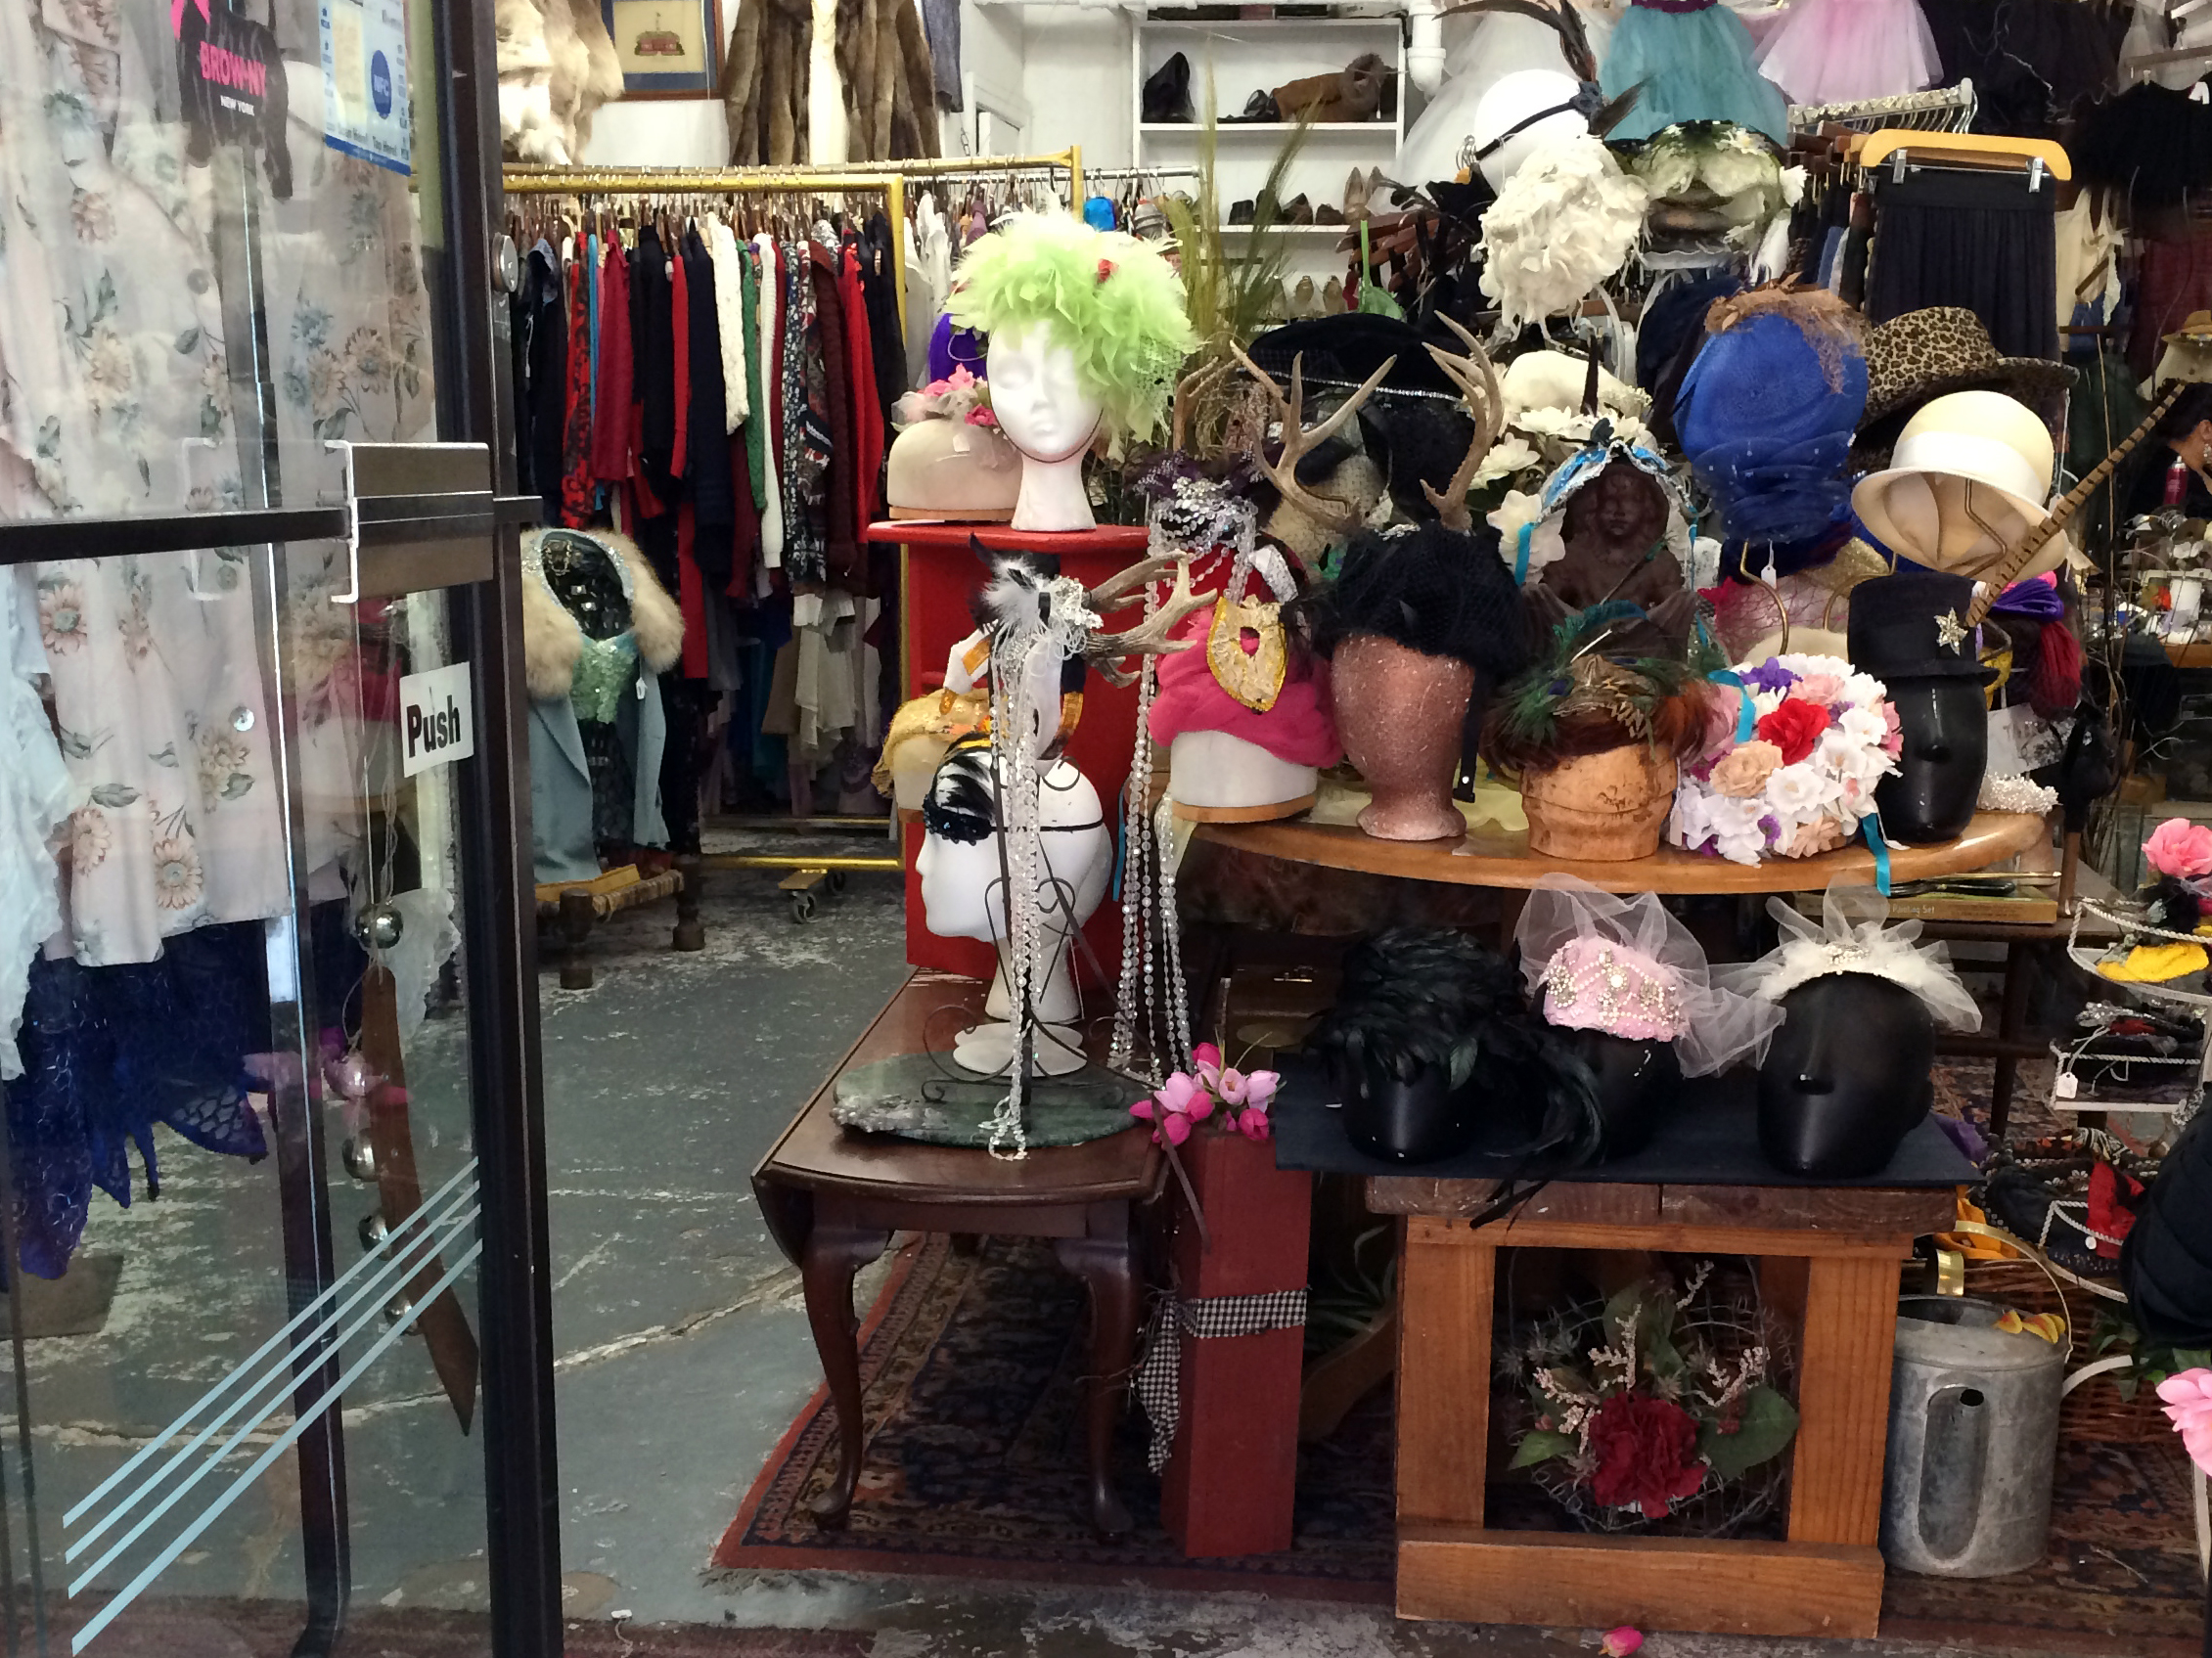 Hats at BrowNY International in New York. Photo by alphacityguides.